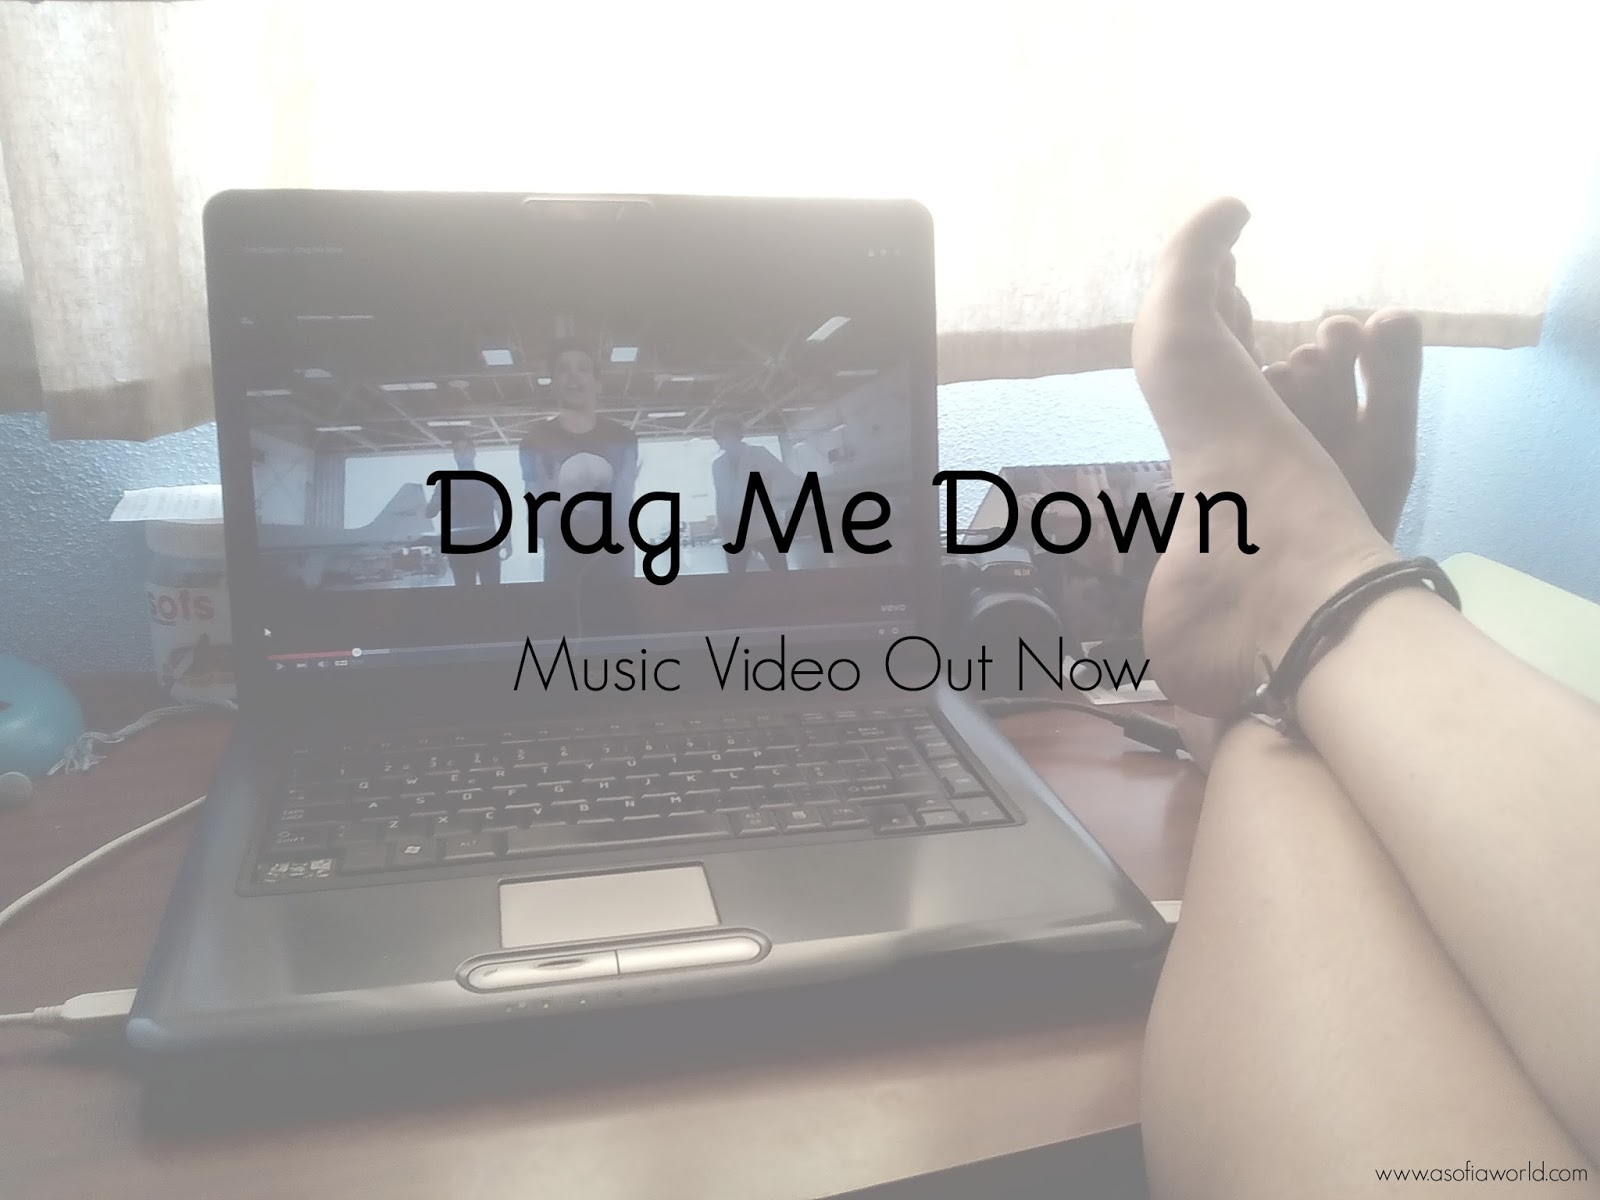 One Direction's drag me down